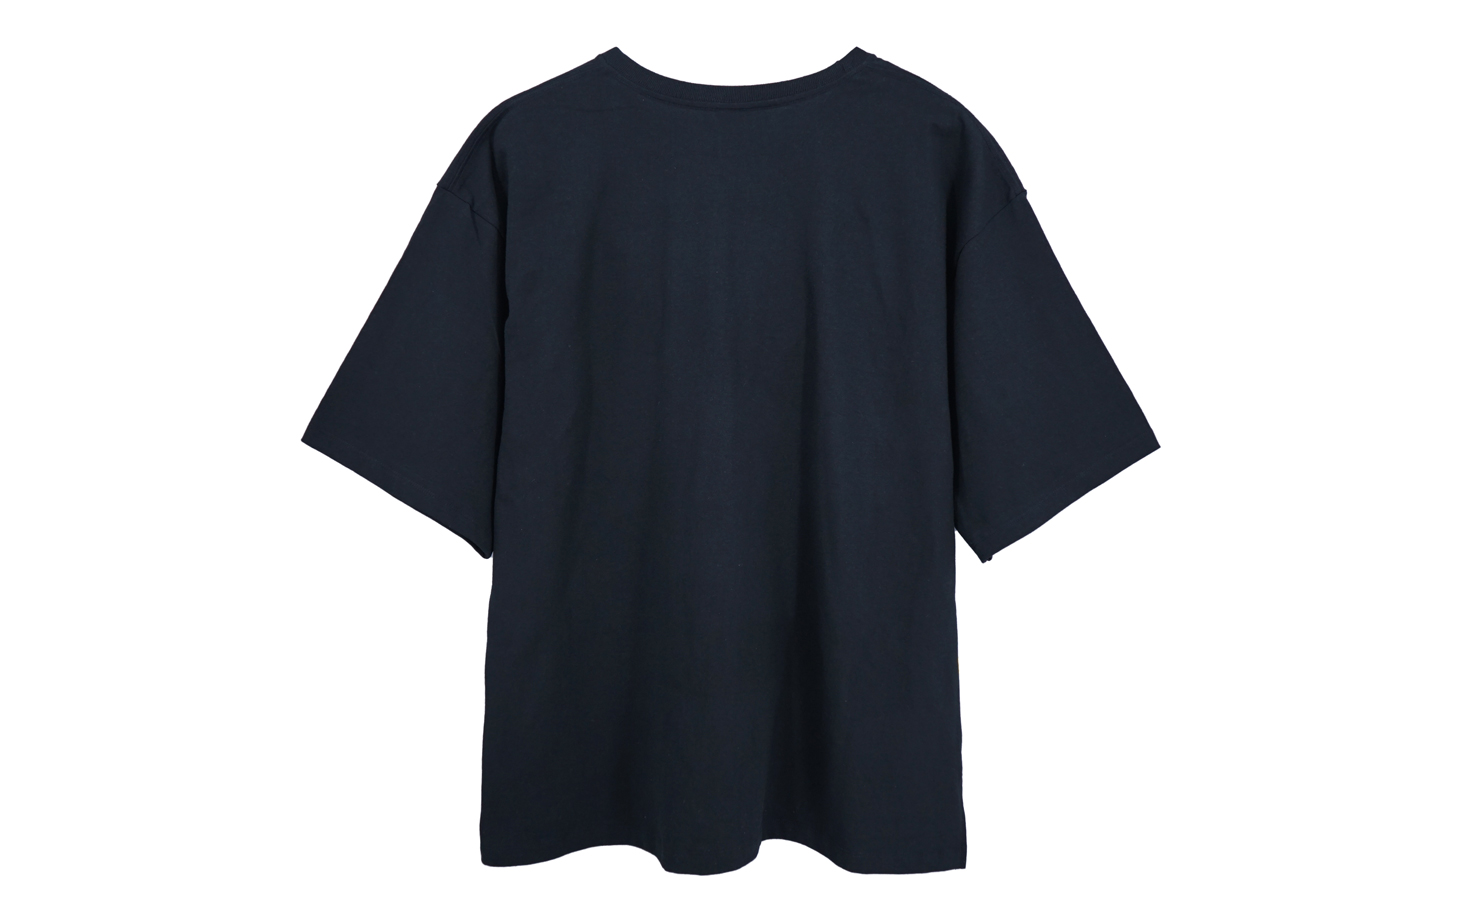 五分袖 Over Size Tee (Black)